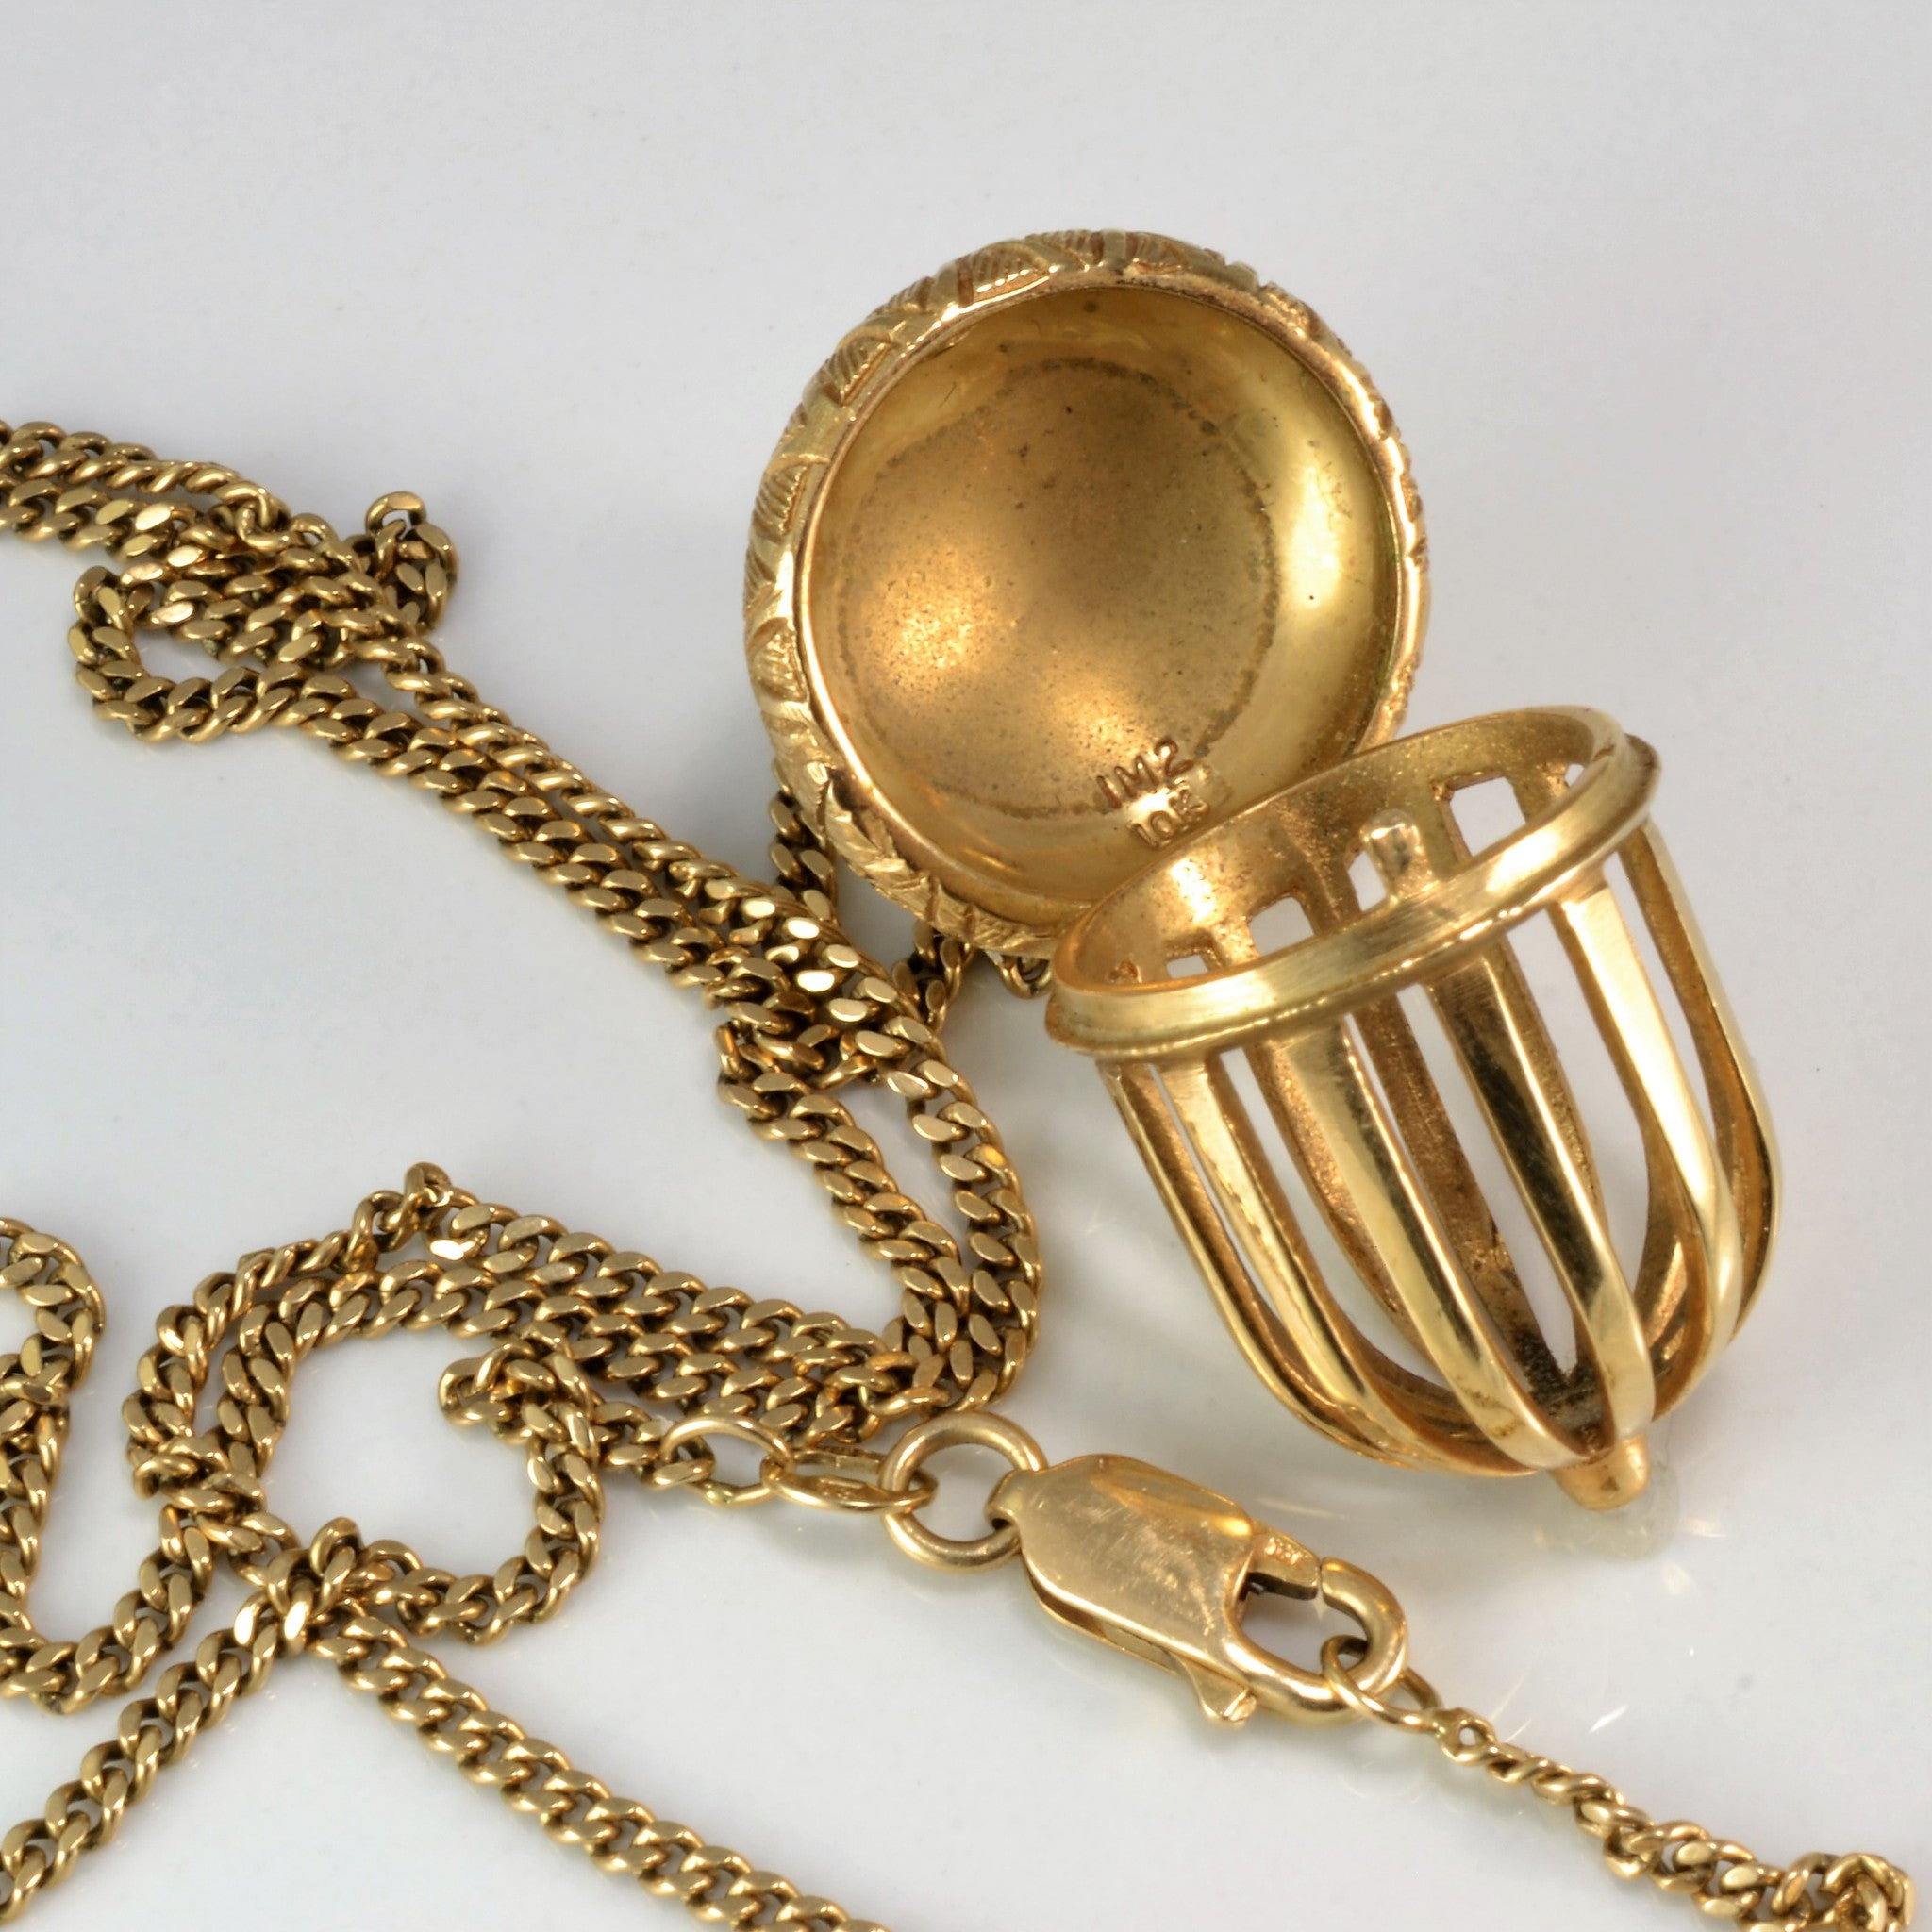 Opening Gold Acorn Necklace | 20"